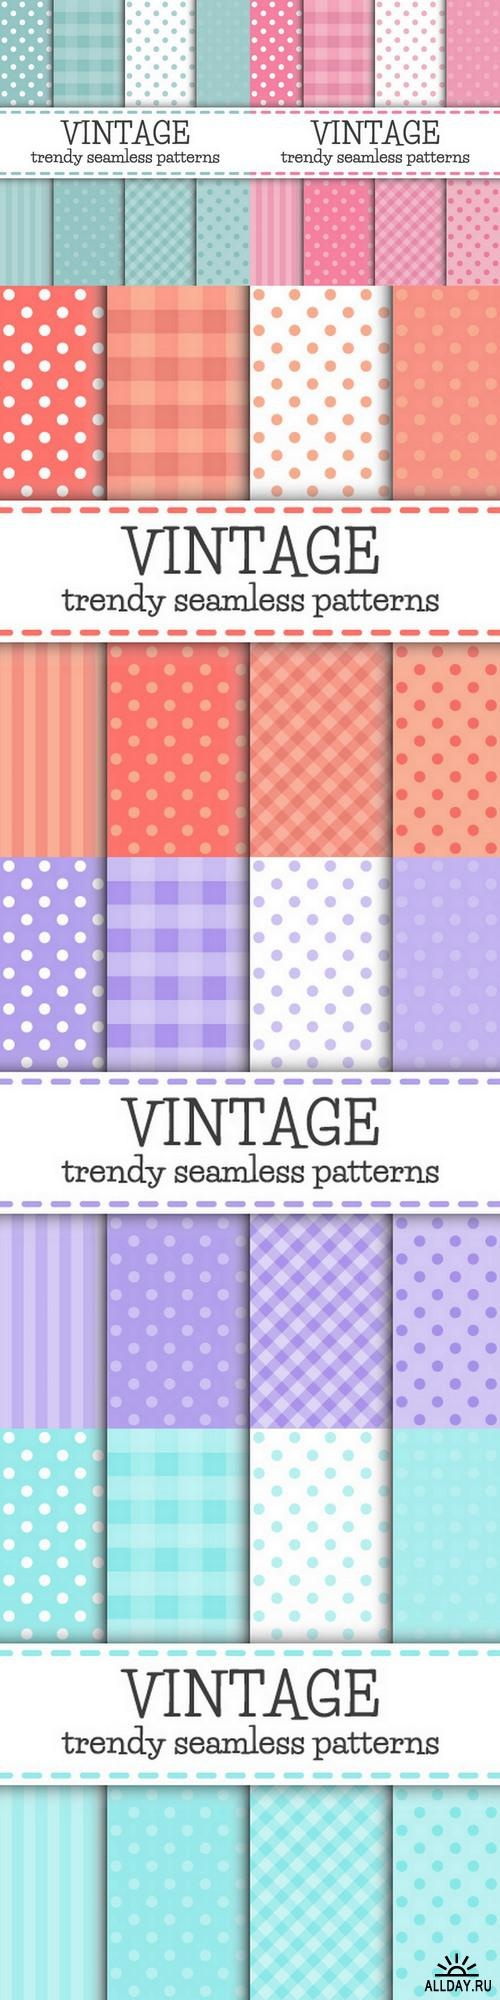 Set of Polka dot and Trendy patterns ((eps (6 files)